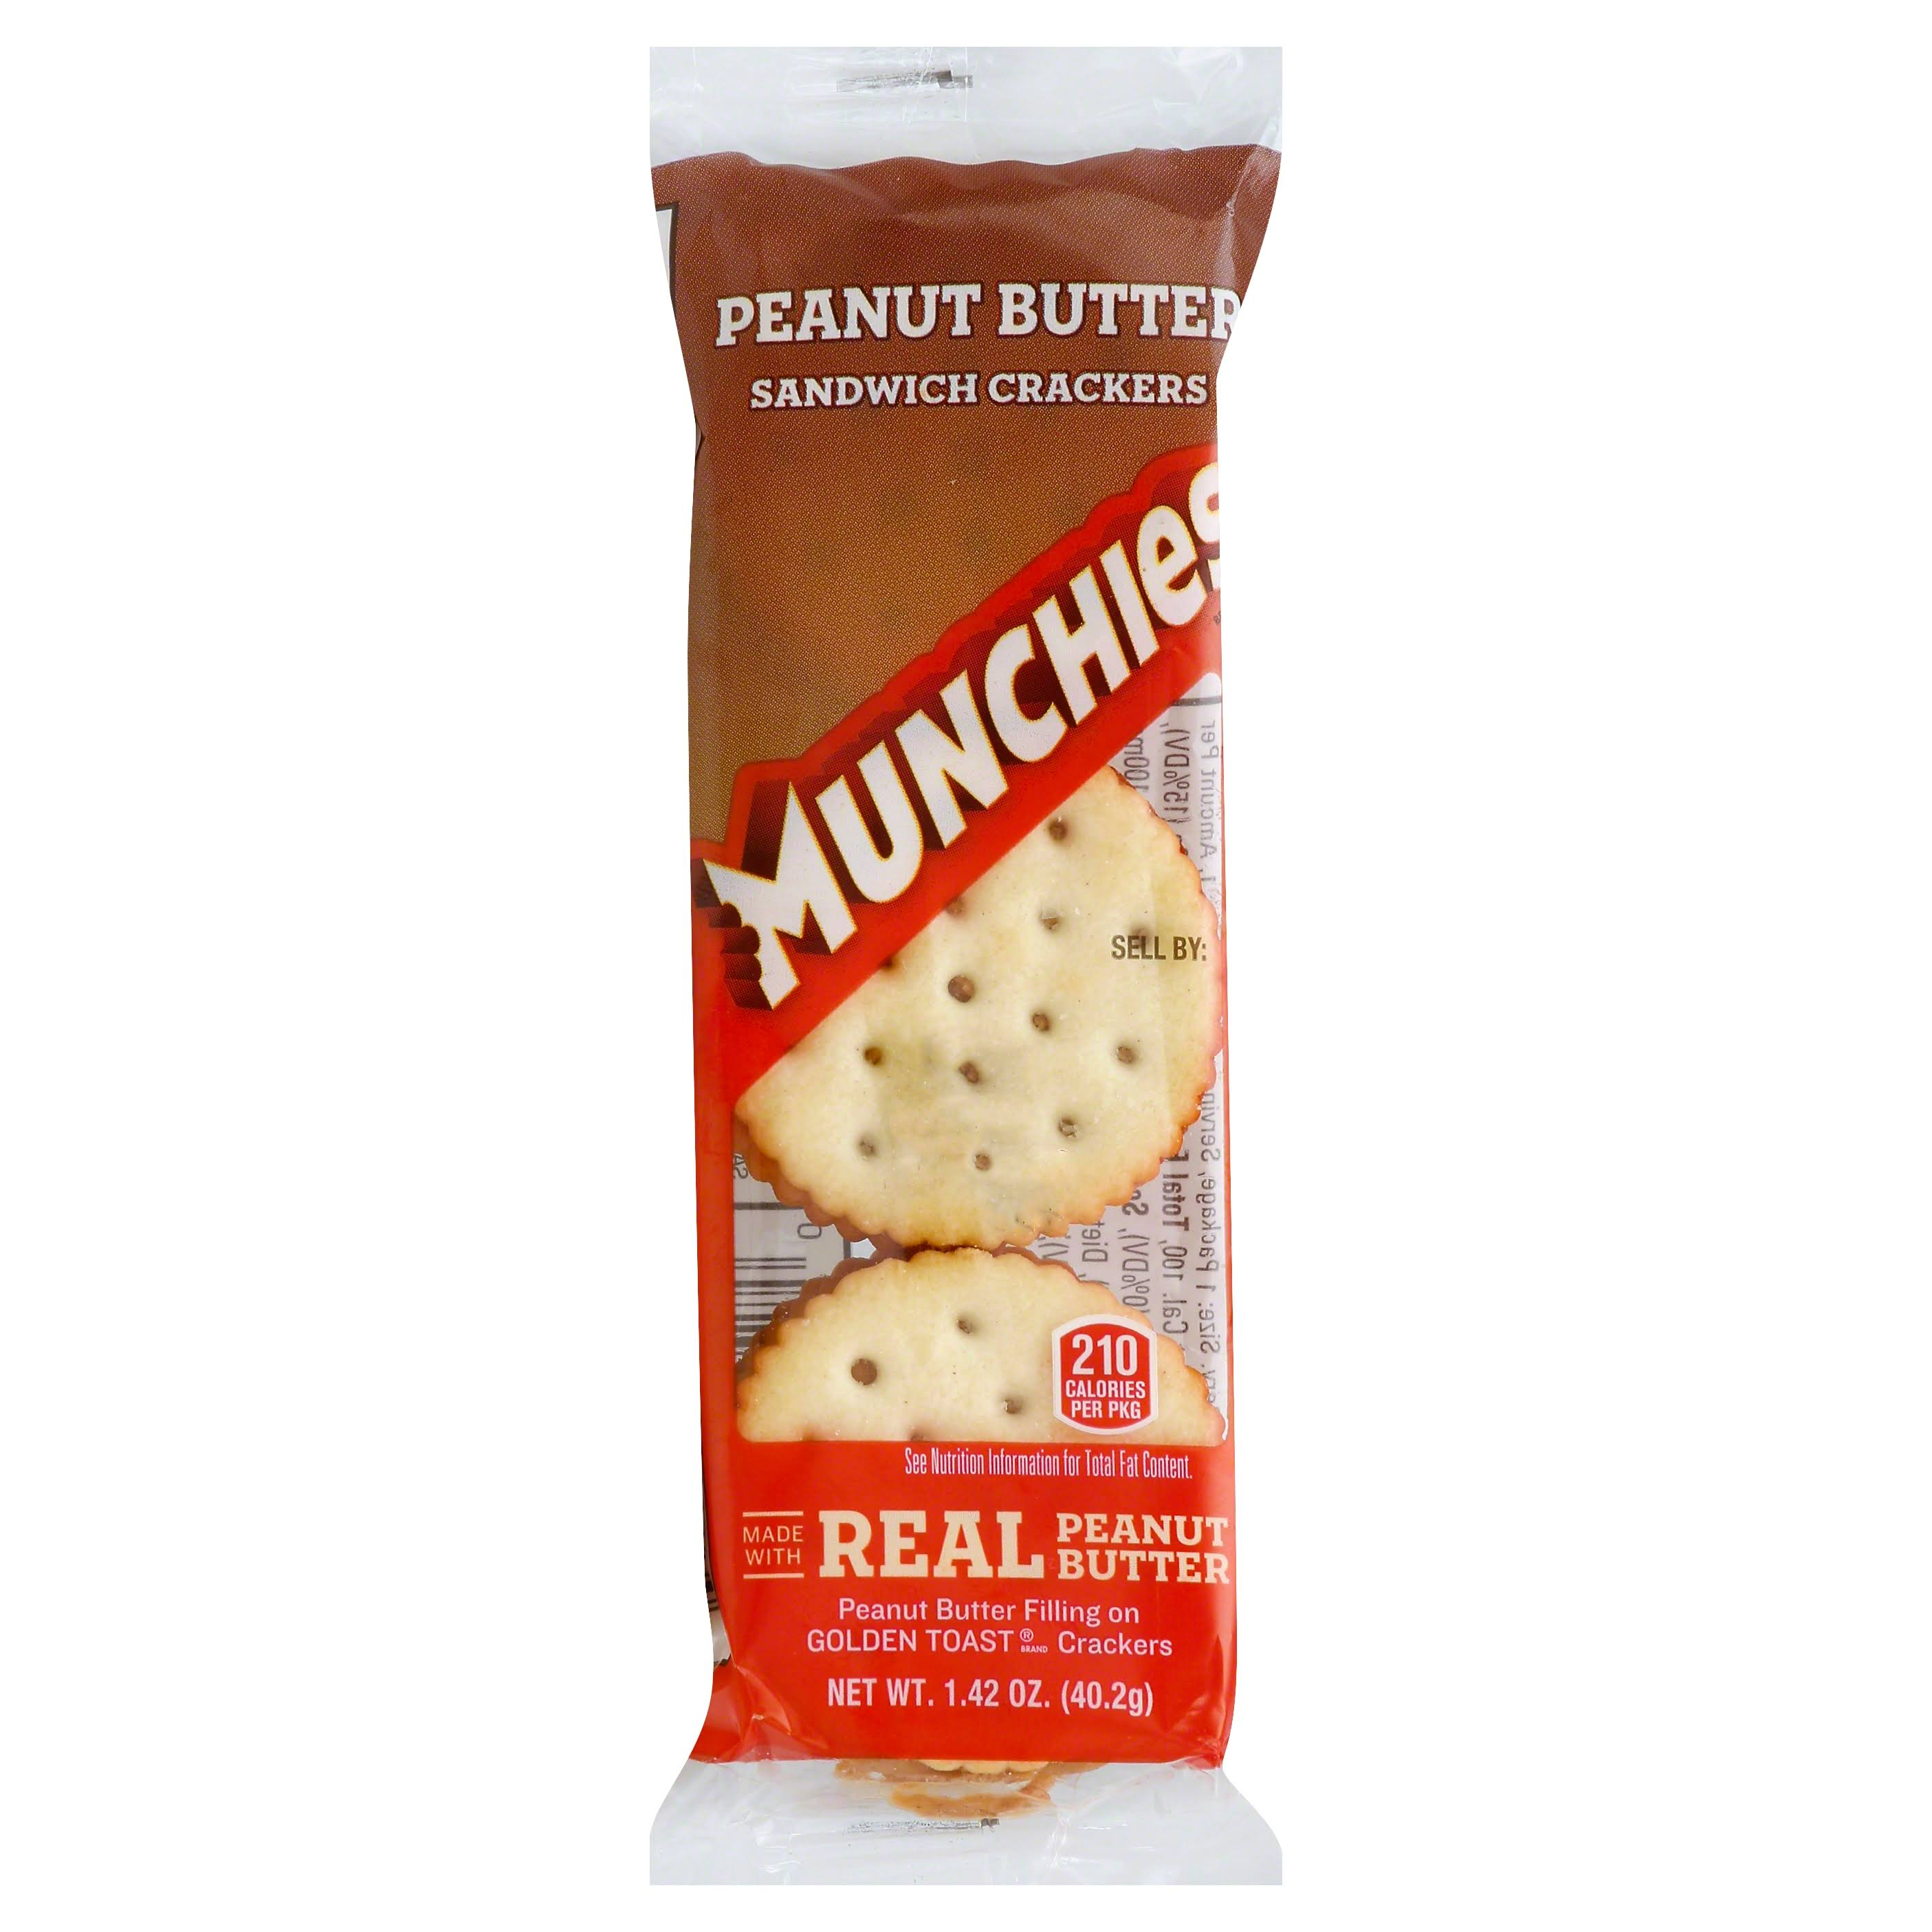 Frito-Lay Munchies Sandwich Crackers - Peanut Butter